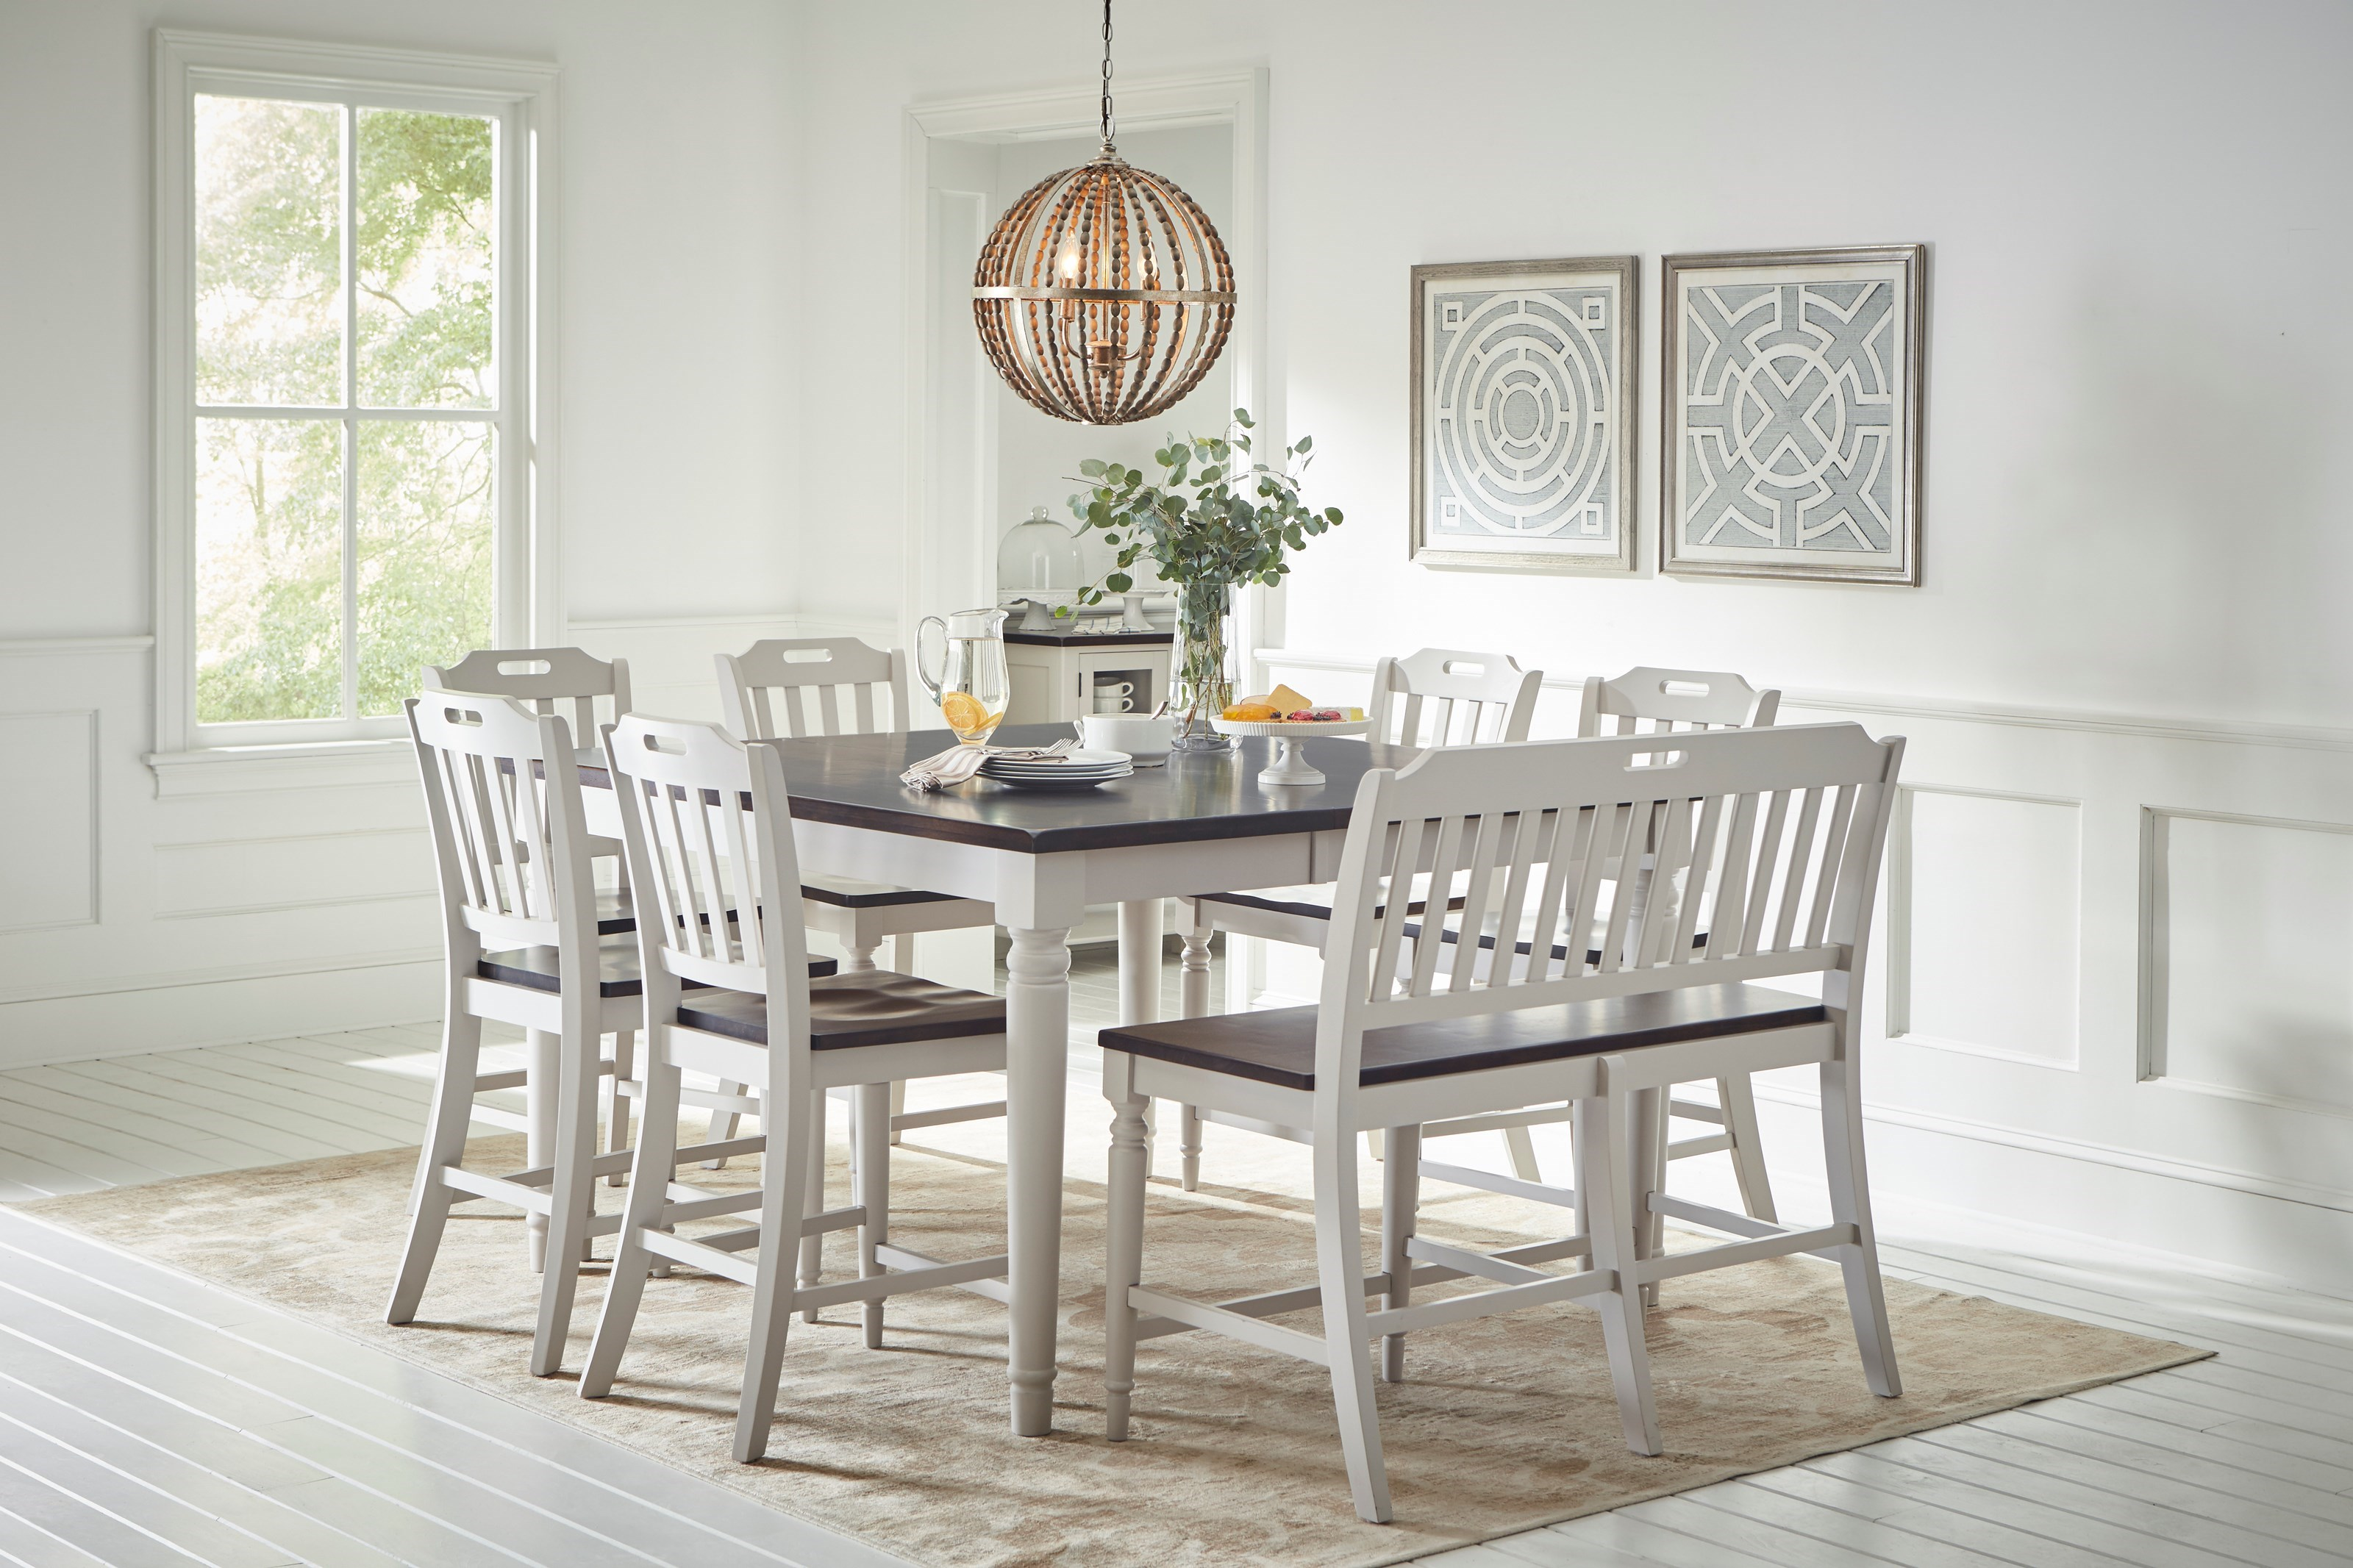 Wonderful Jofran Orchard Park Counter Height Dining Table With 6 Chairs And Bench |  Value City Furniture | Dining 7 (or More) Piece Sets